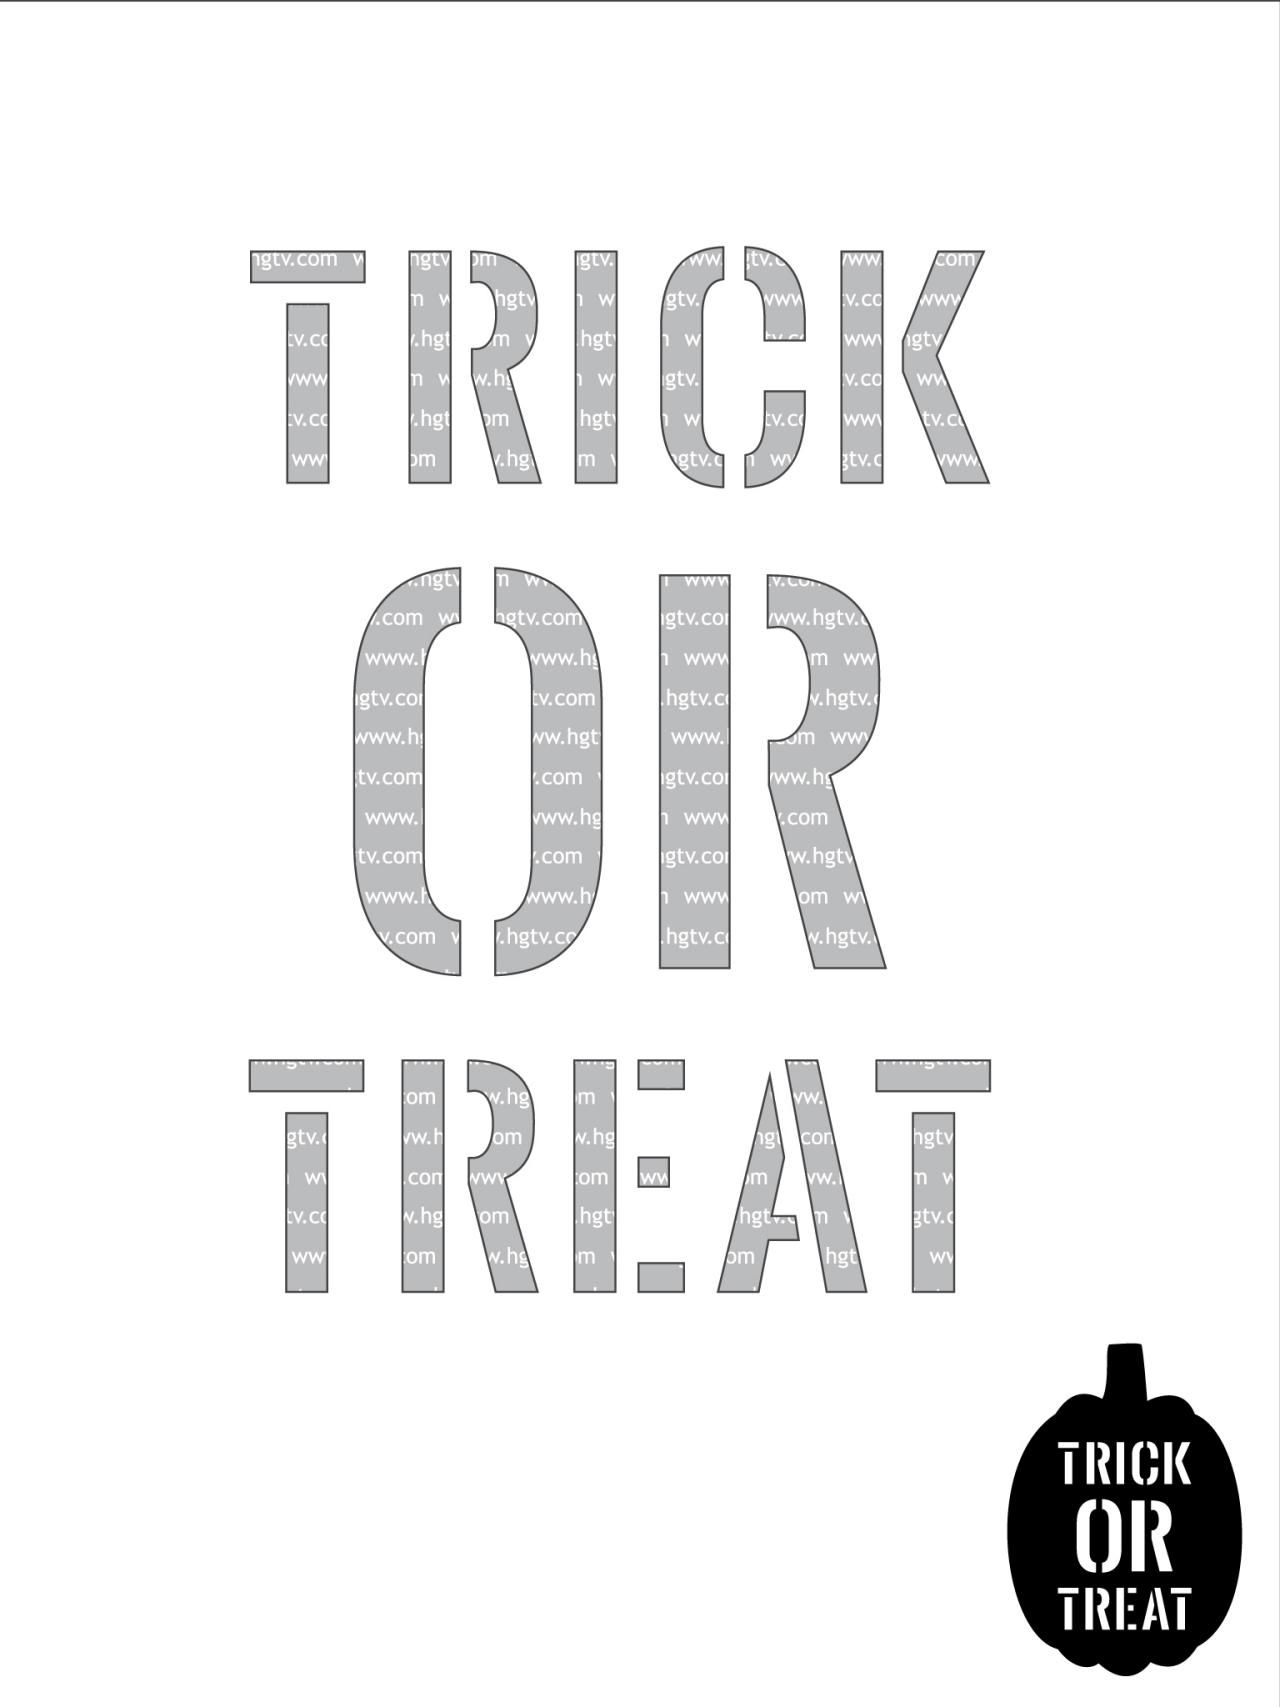 Uncategorized Trick Or Treat Stencil advanced halloween pumpkin carving templates carvings interior design styles and color schemes for home decorating